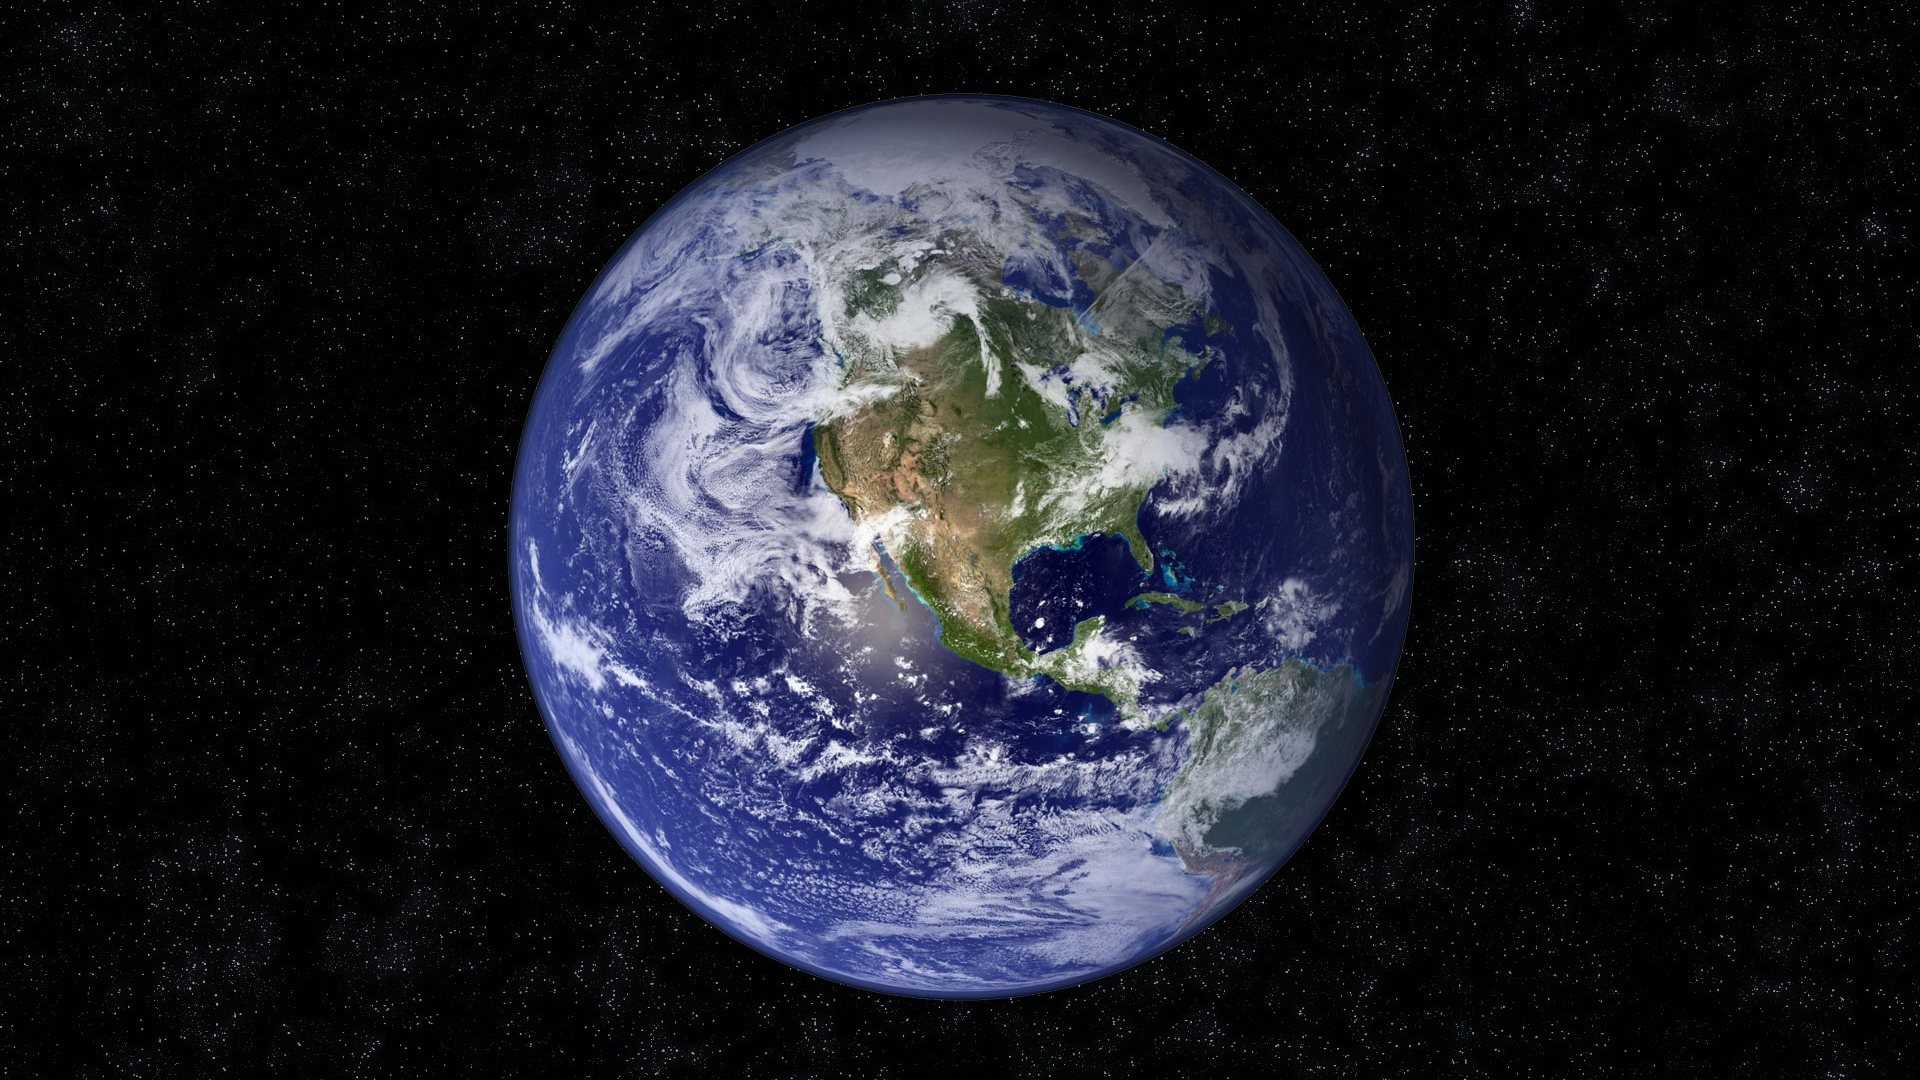 space wallpapers Earth form Space Nort America   FullHD 1920x1080 1920x1080